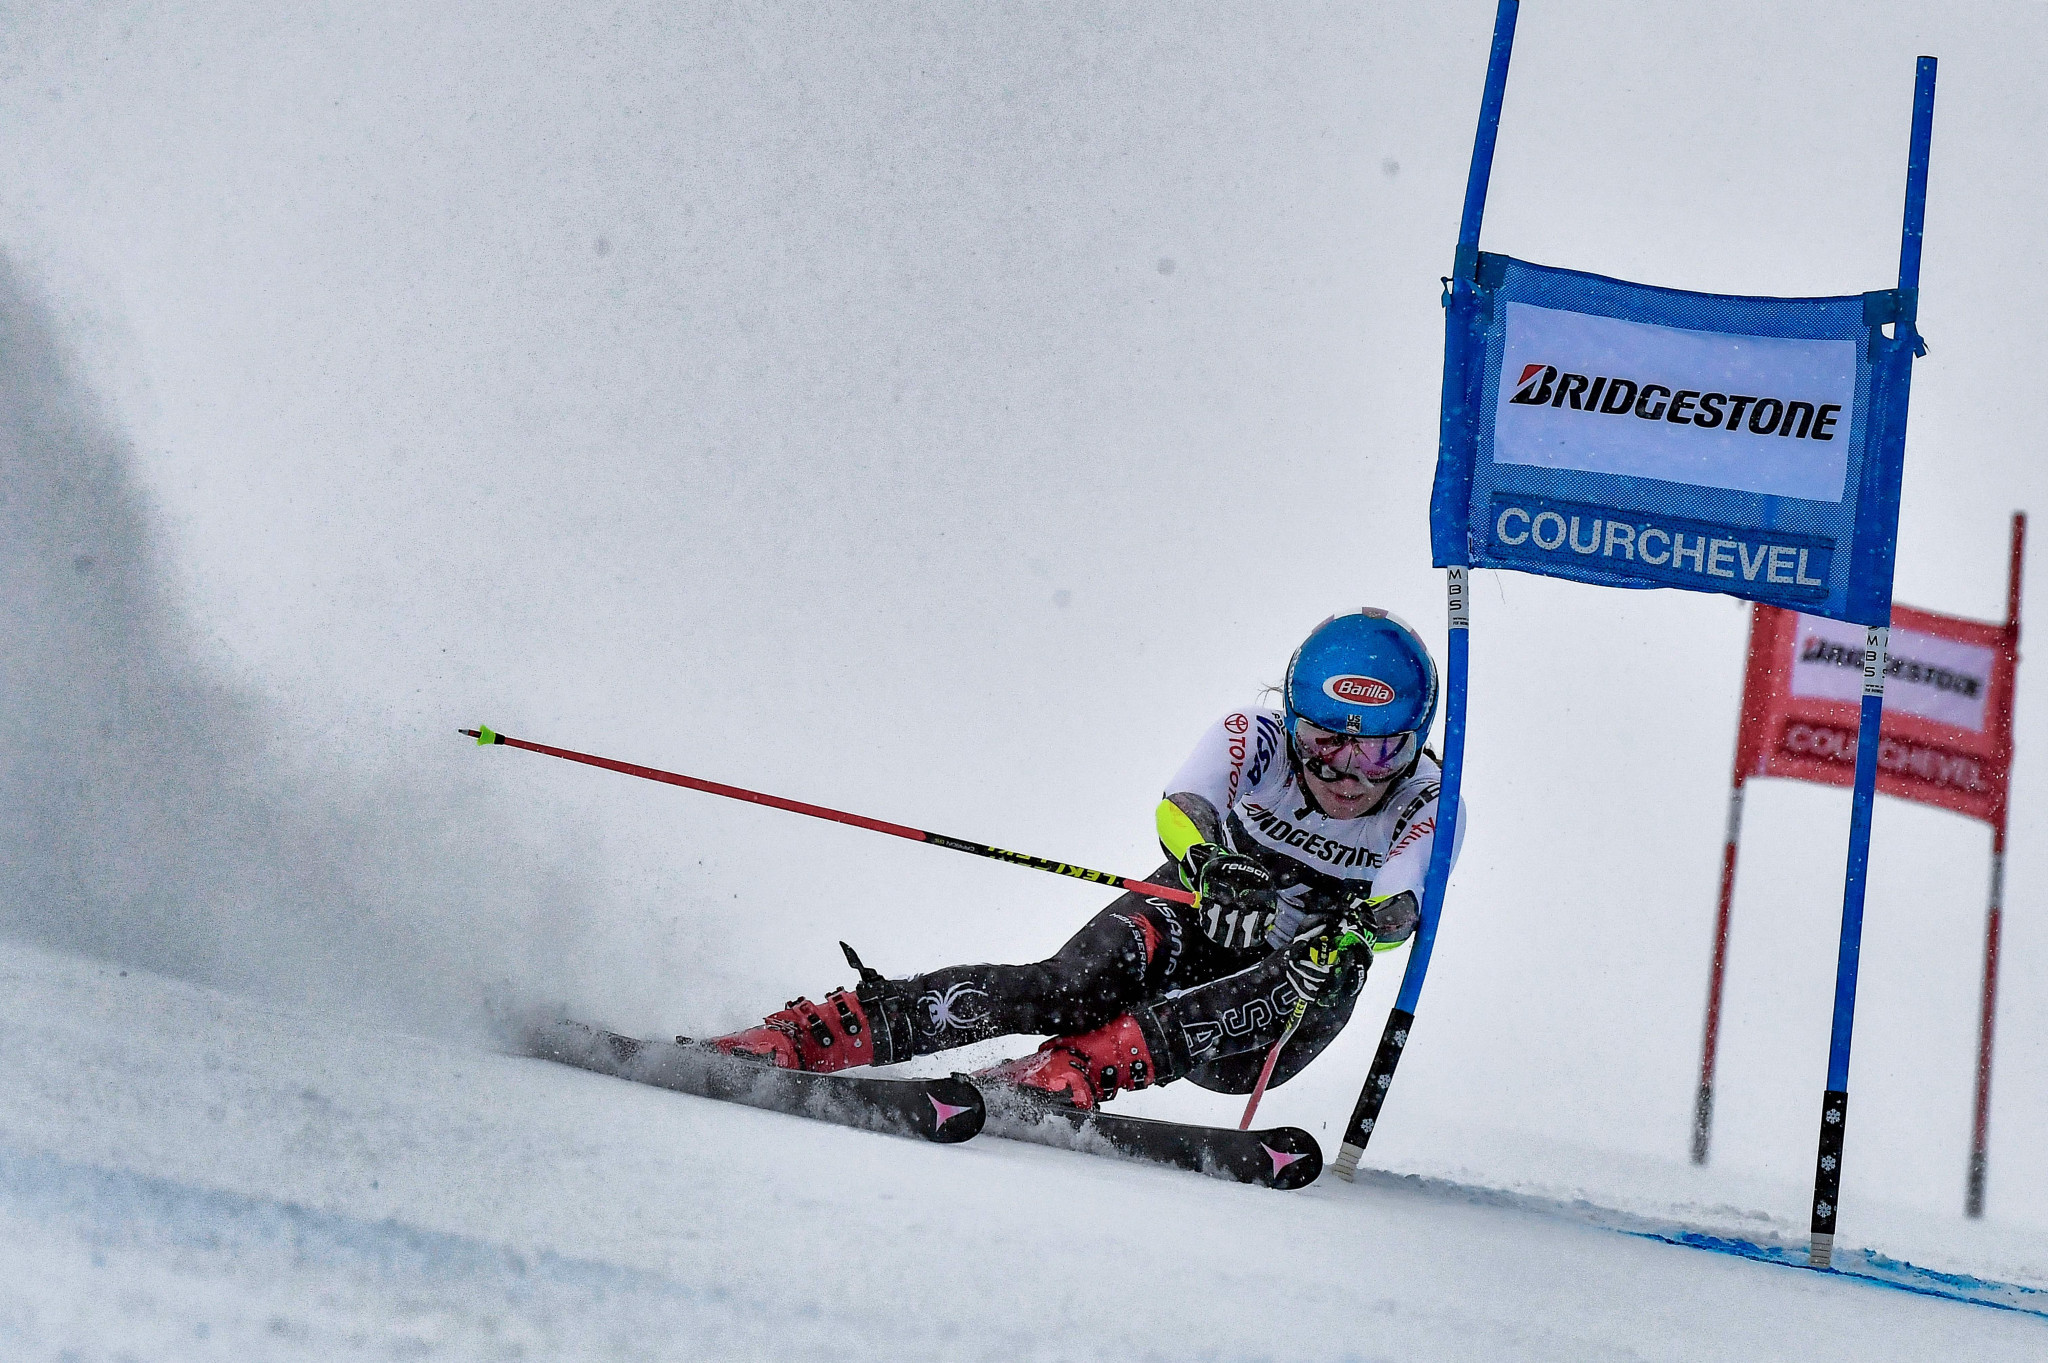 Going into her second run Mikaela Shiffrin was behind, but she managed to make up the difference ©Getty Images